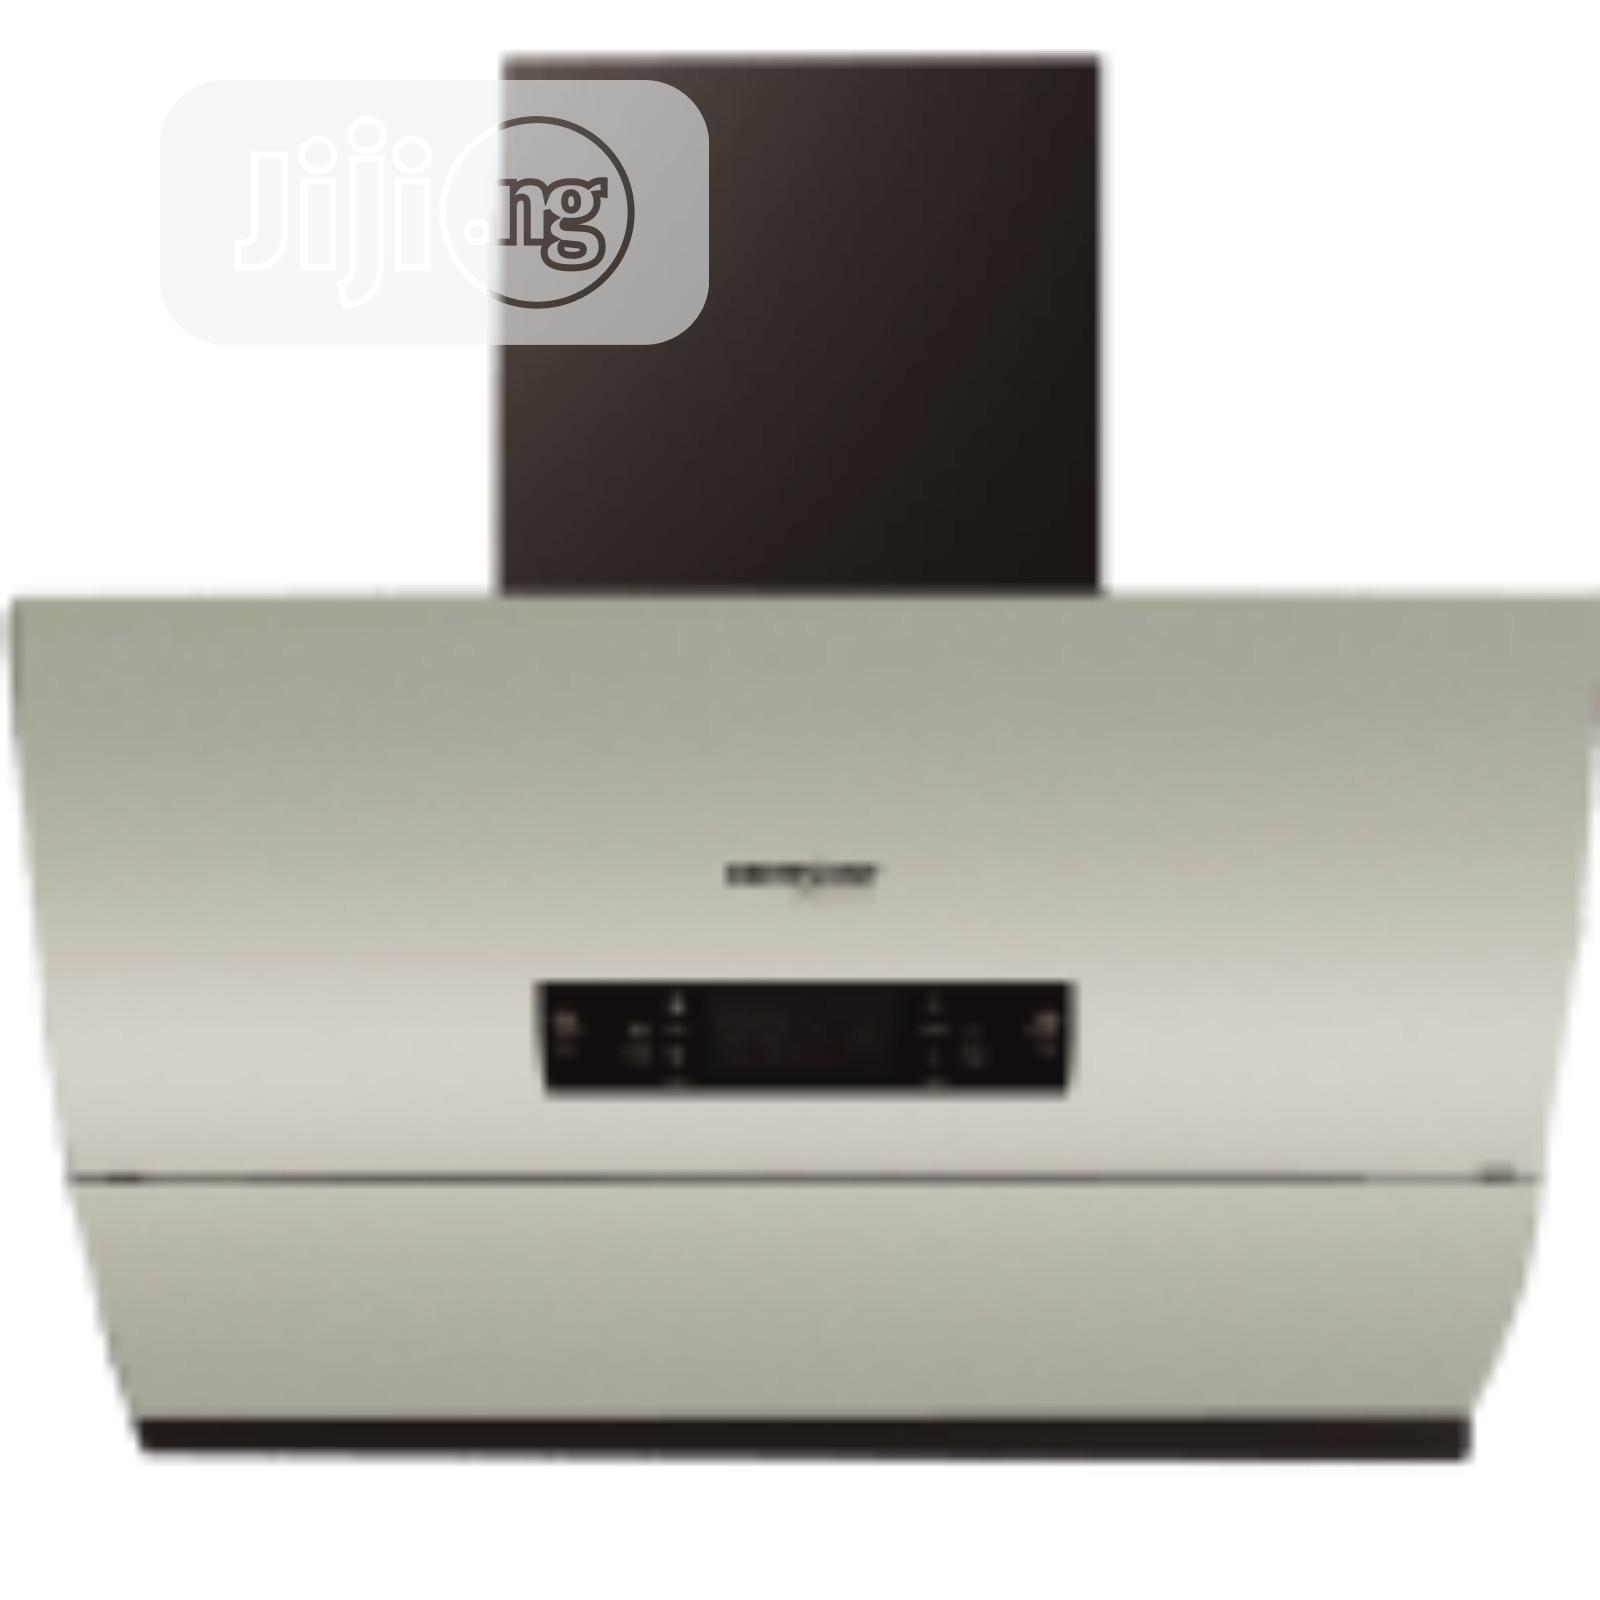 Restpoint Digital Kitchen Range Hood